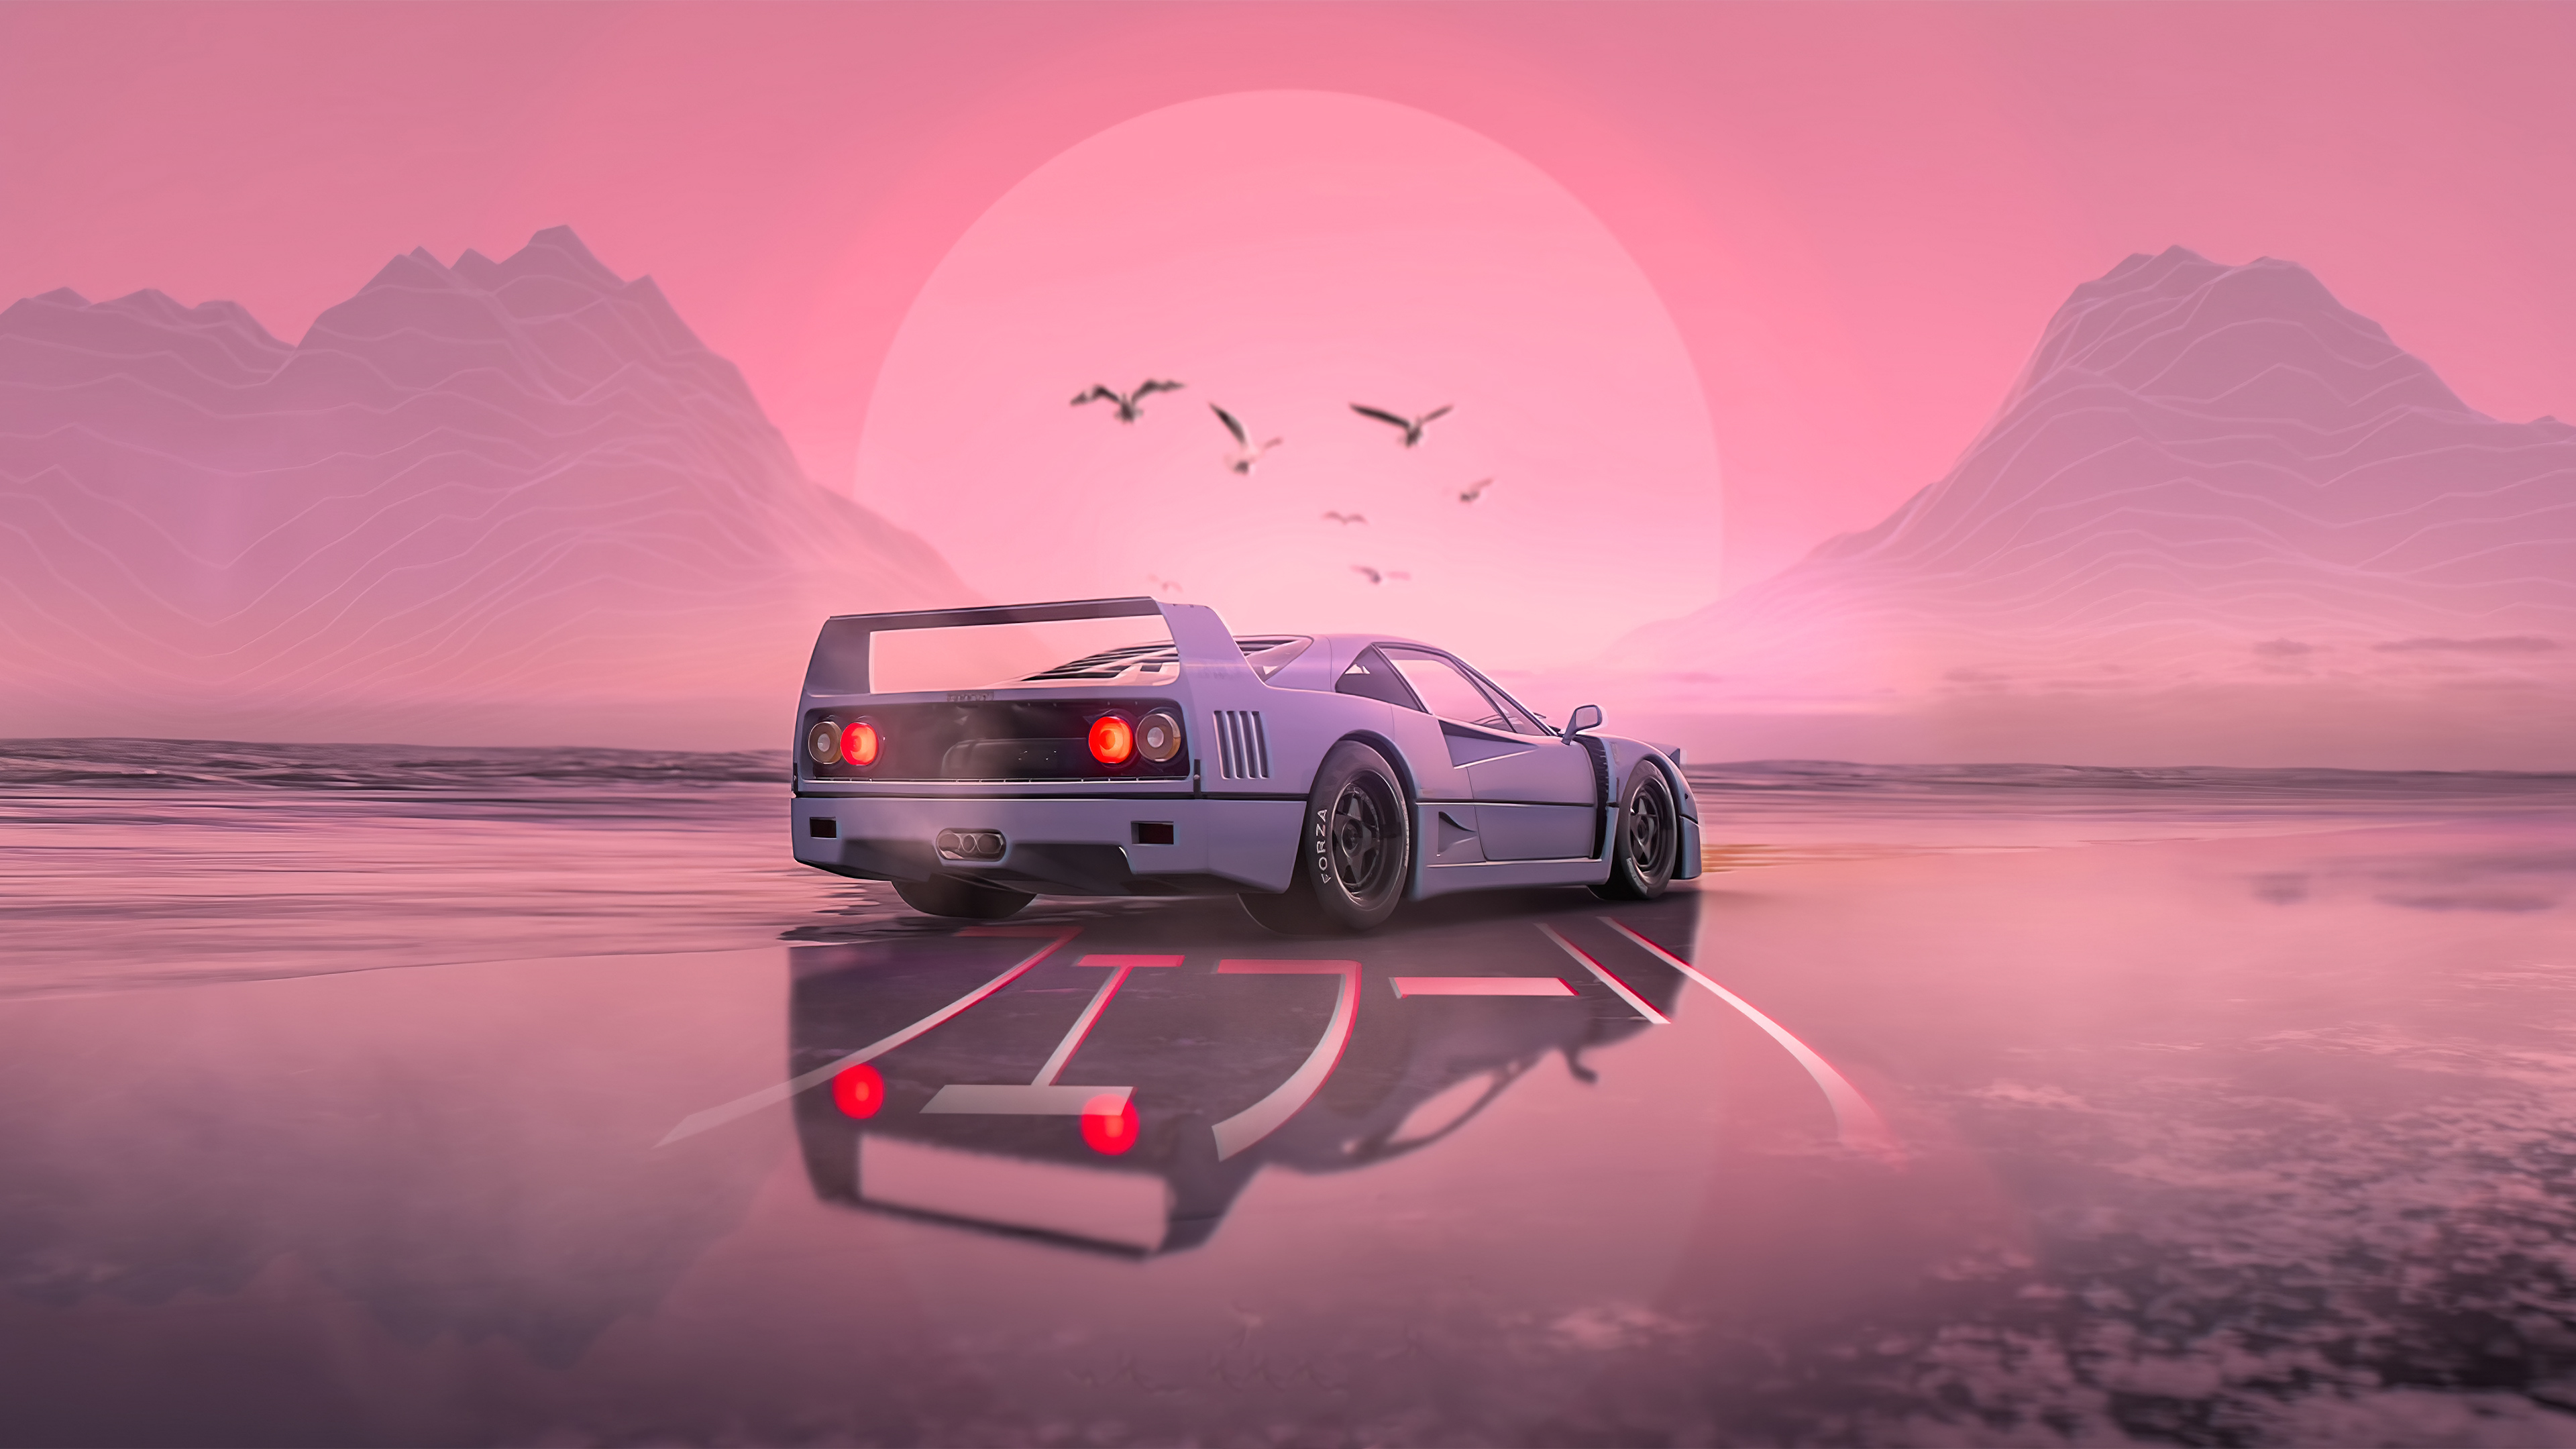 Pink Cars Wallpapers Posted By Sarah Tremblay